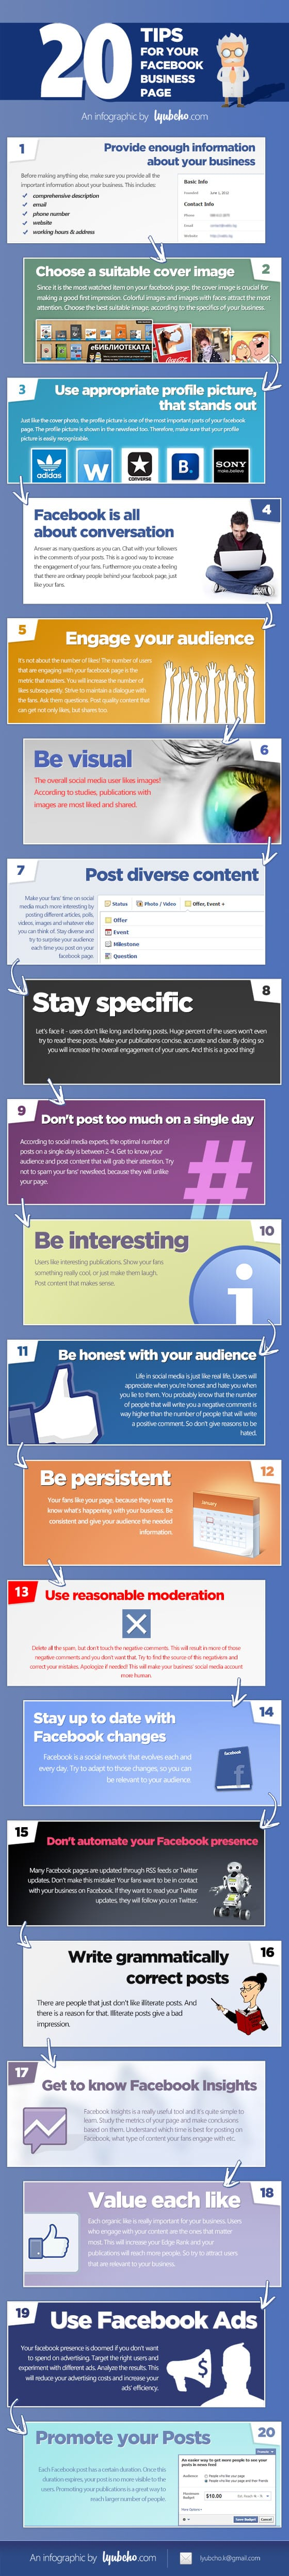 20_tips_for_your_facebook_business_page_blog